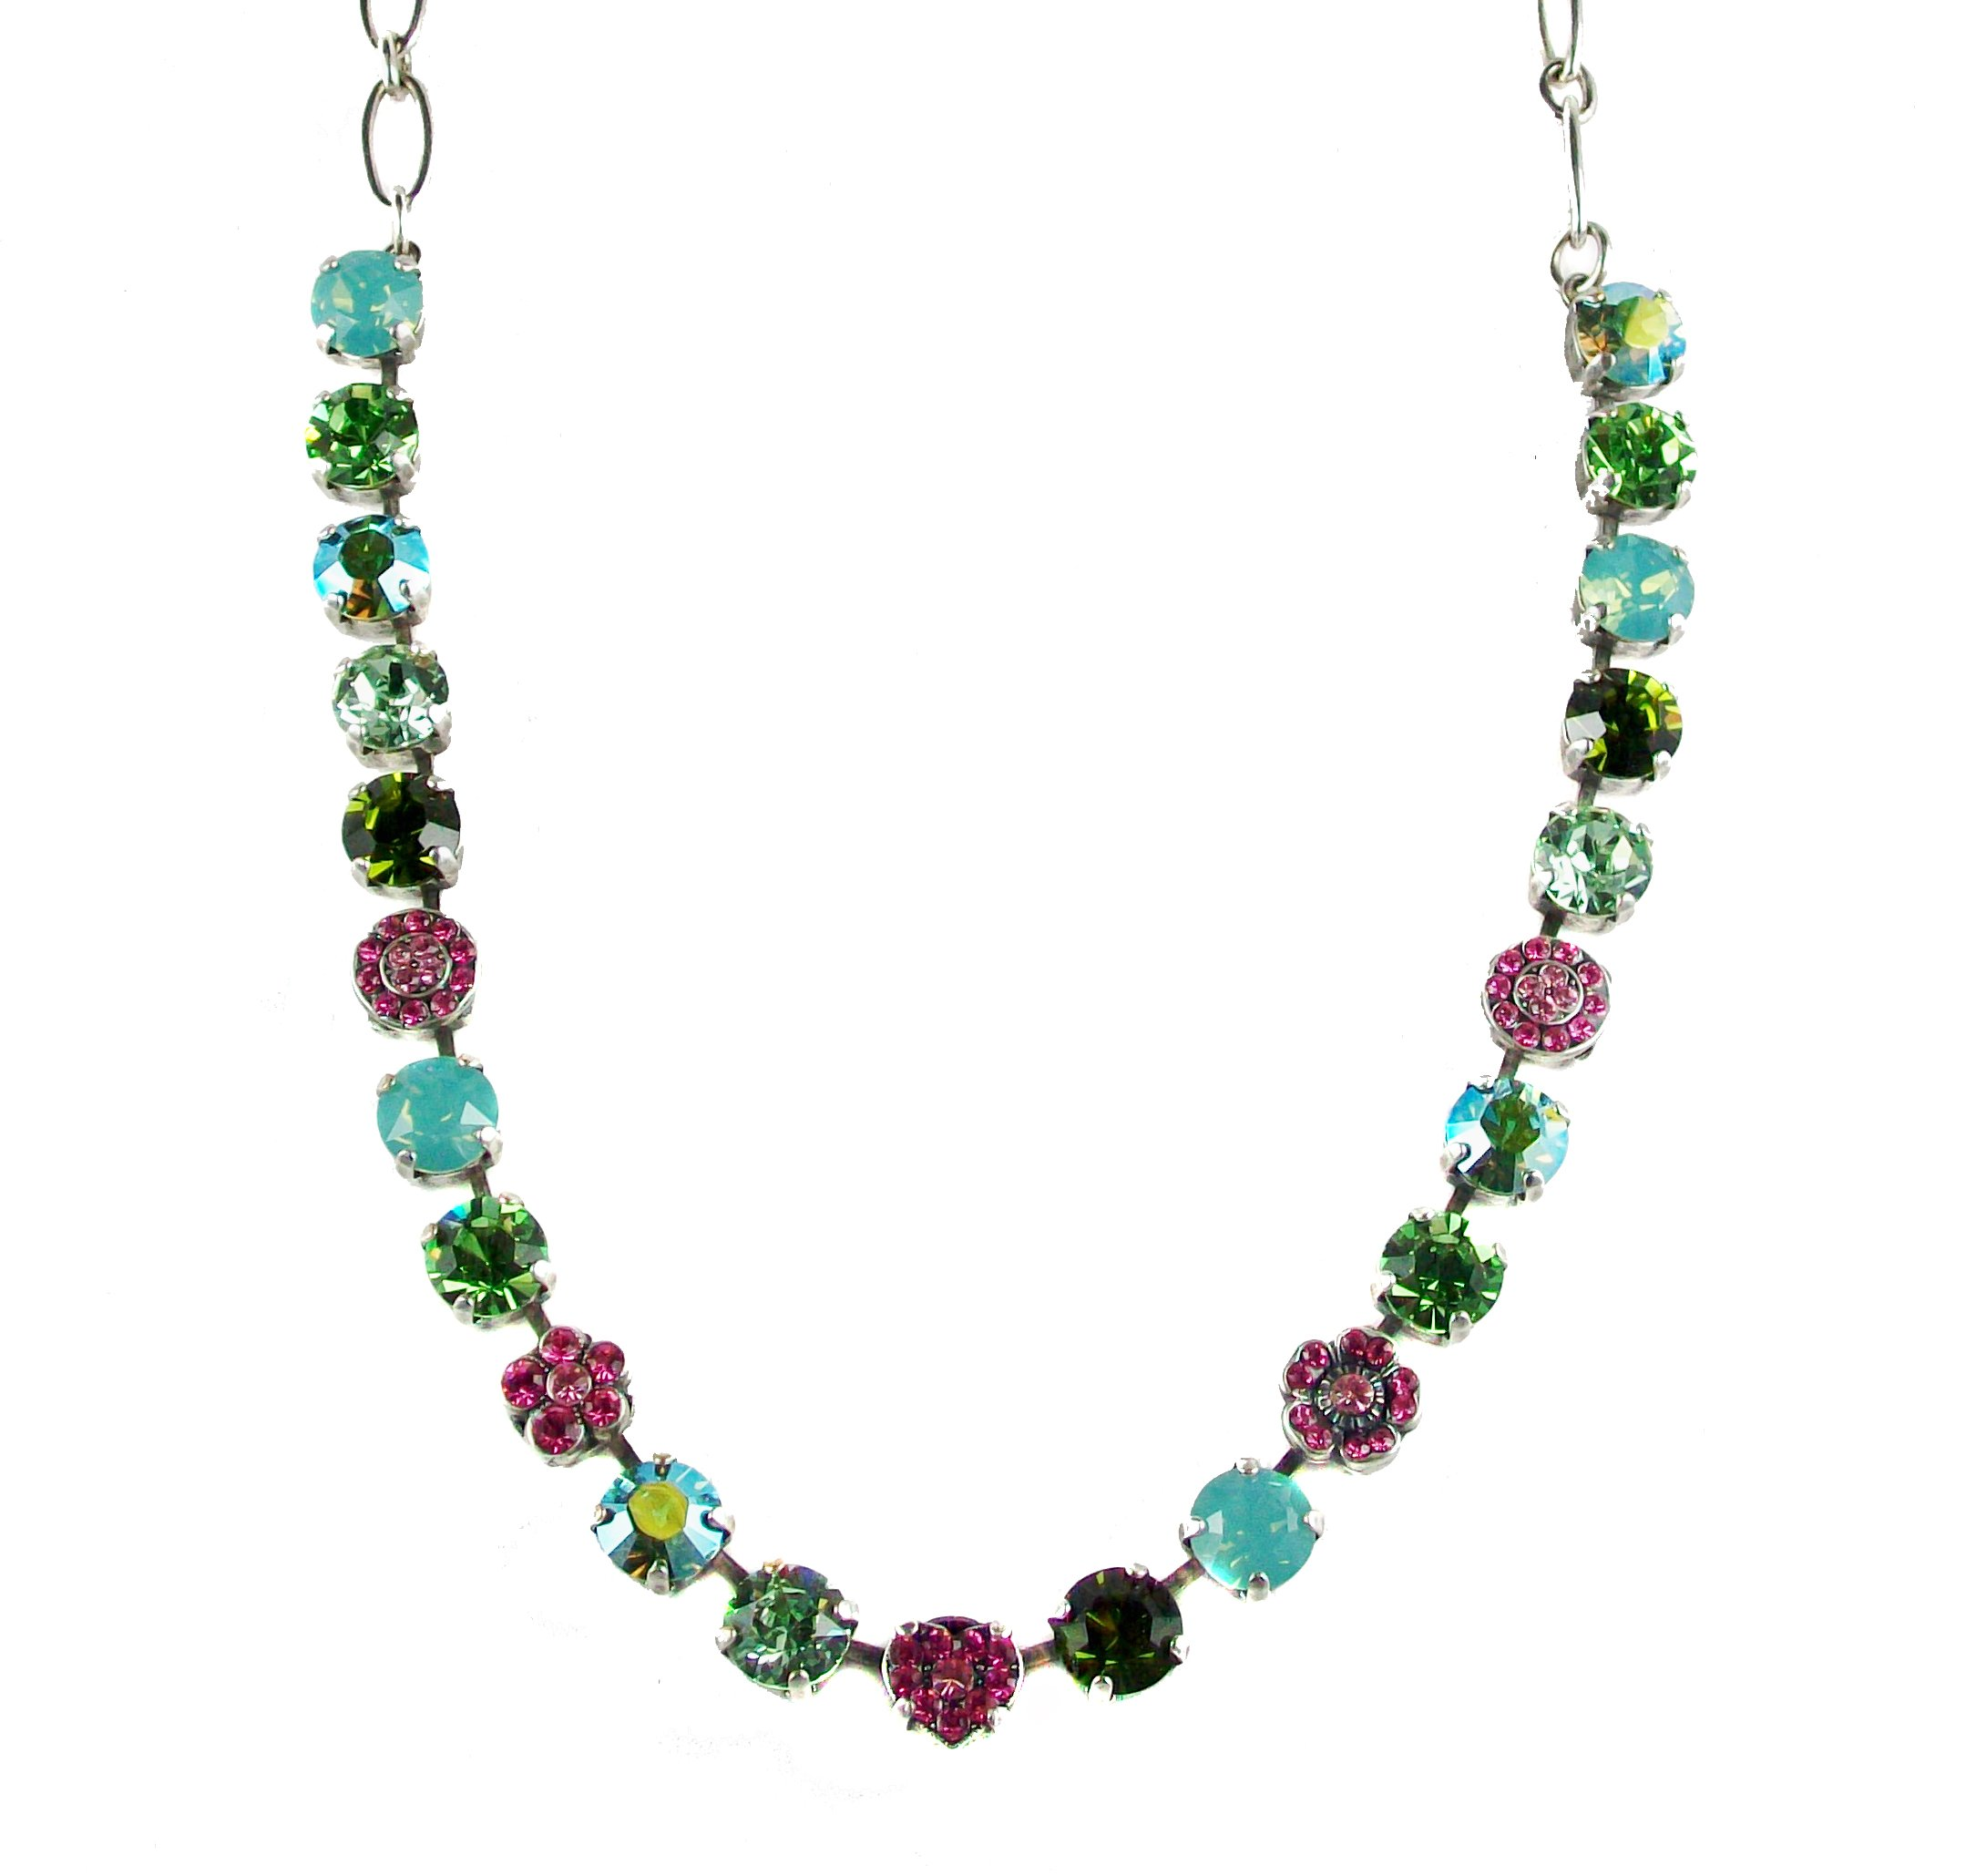 Mariana ''Tropical'' Antique Silver Plated Swarovski Crystal Flower Necklace, 16''